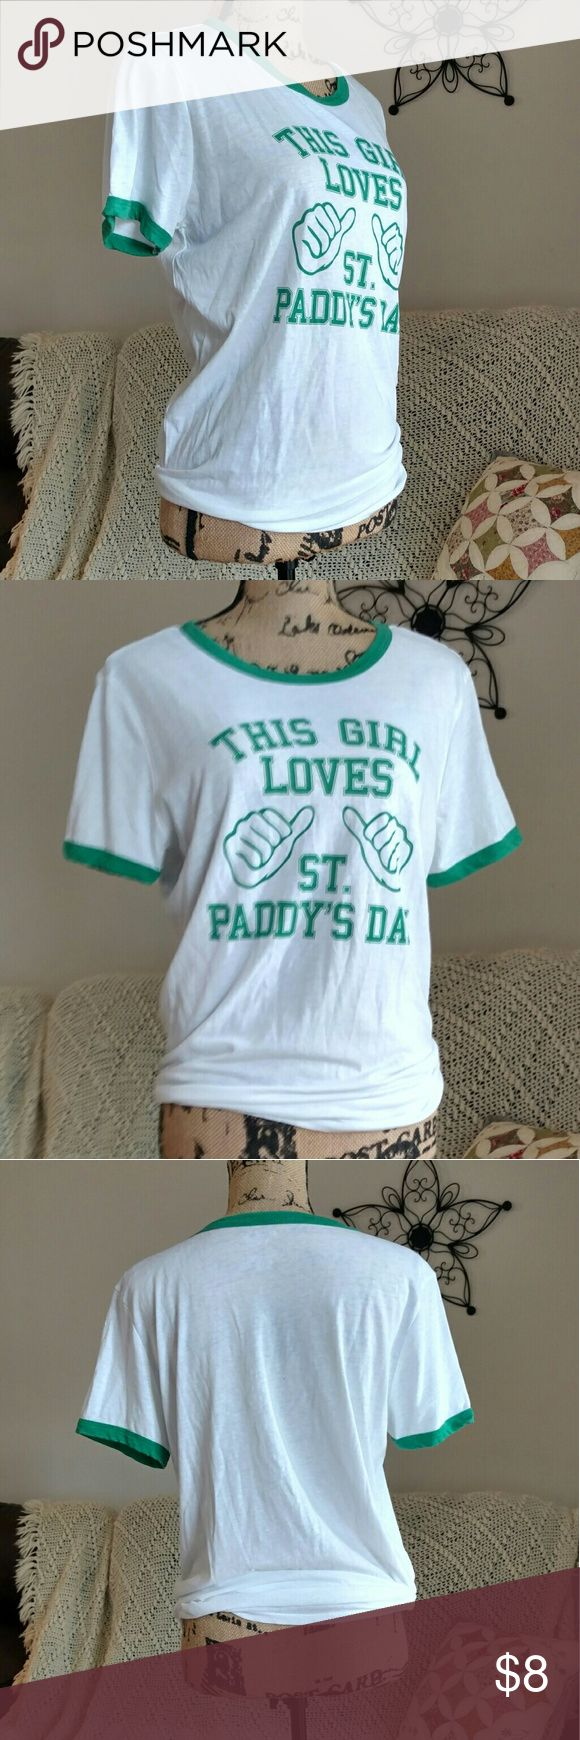 """St. Paddy's Day Tee size XL EUC Worn once """"This girl loves St. Paddy's Day"""" tee from FREEZE. No holes, stains or flaws whatsoever.  SUPER fast same day or next business day shipping!! FREEZE Tops Tees - Short Sleeve"""